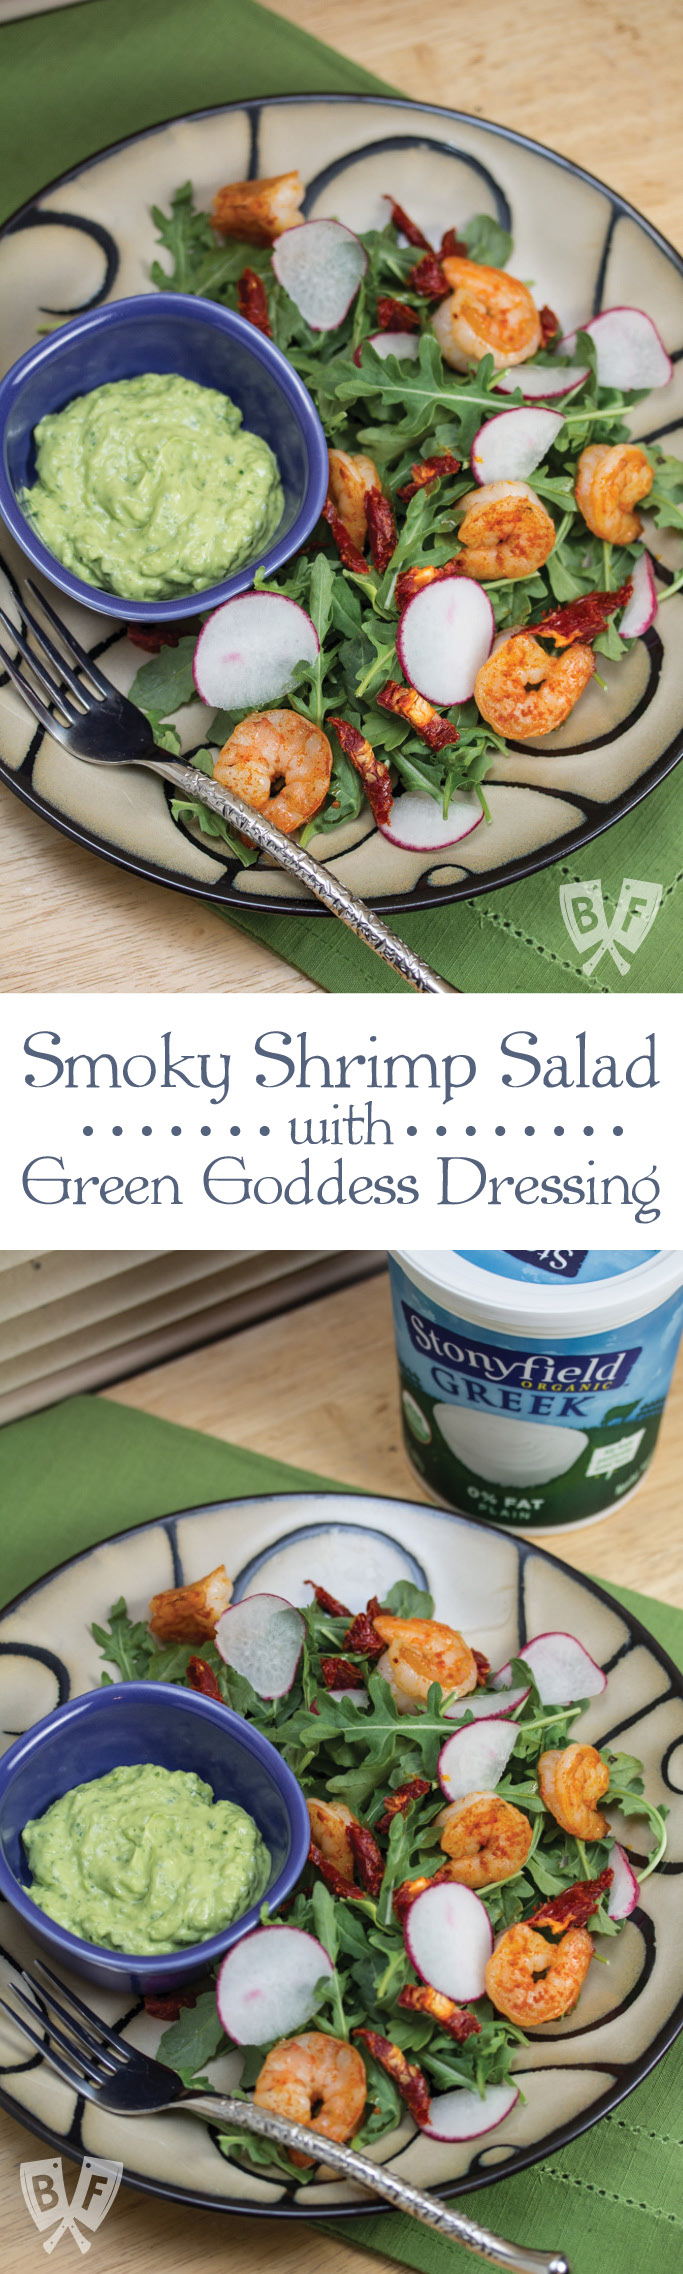 Smoky Shrimp Salad with Green Goddess Dressing: Ripe avocado and Greek yogurt add richness to this mayo-free, herb-studded salad dressing.